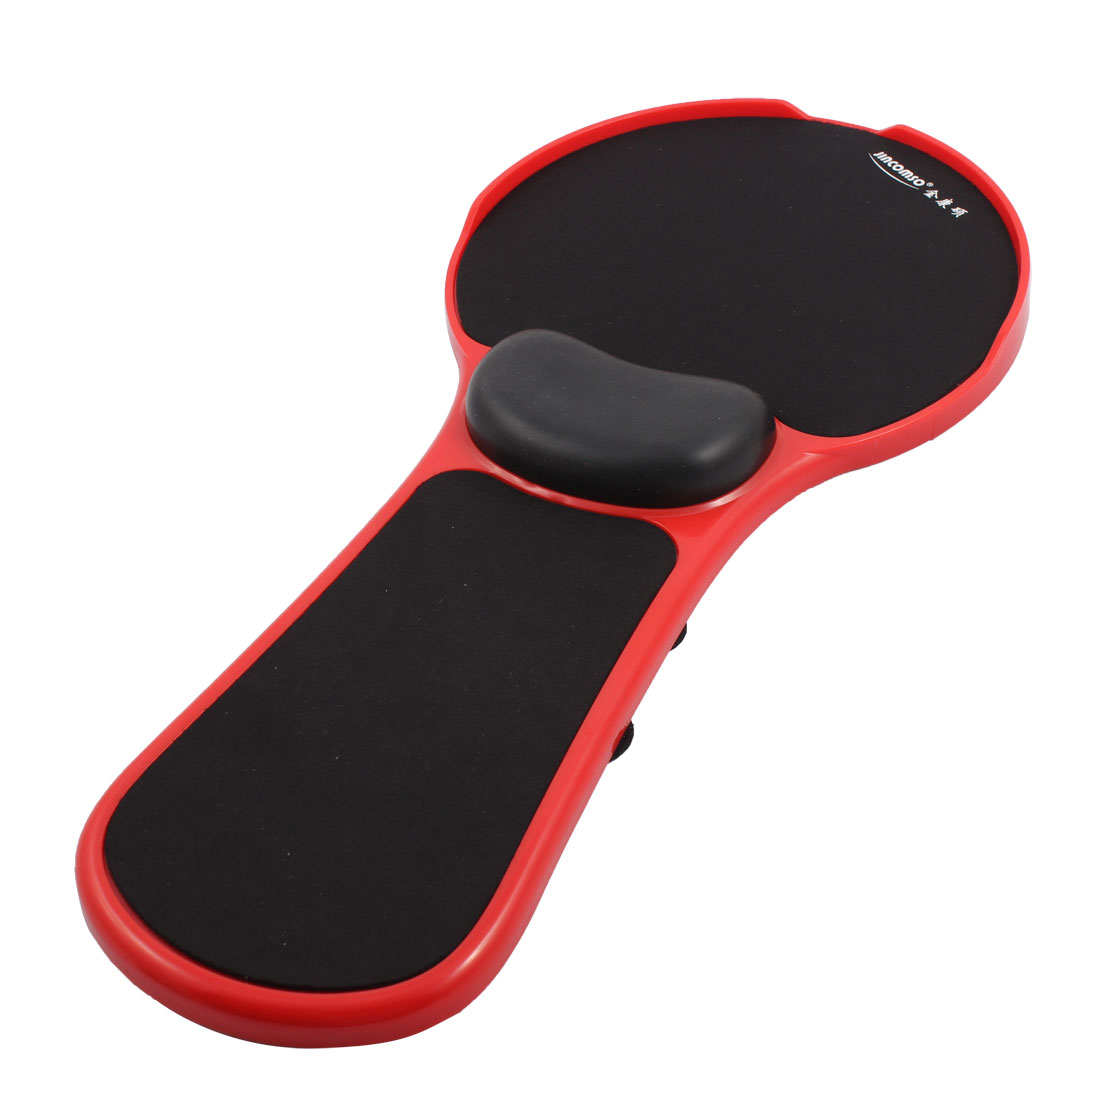 Adjustable Chair Extender Computer Arm Support Mouse Pad Pallet Red Black